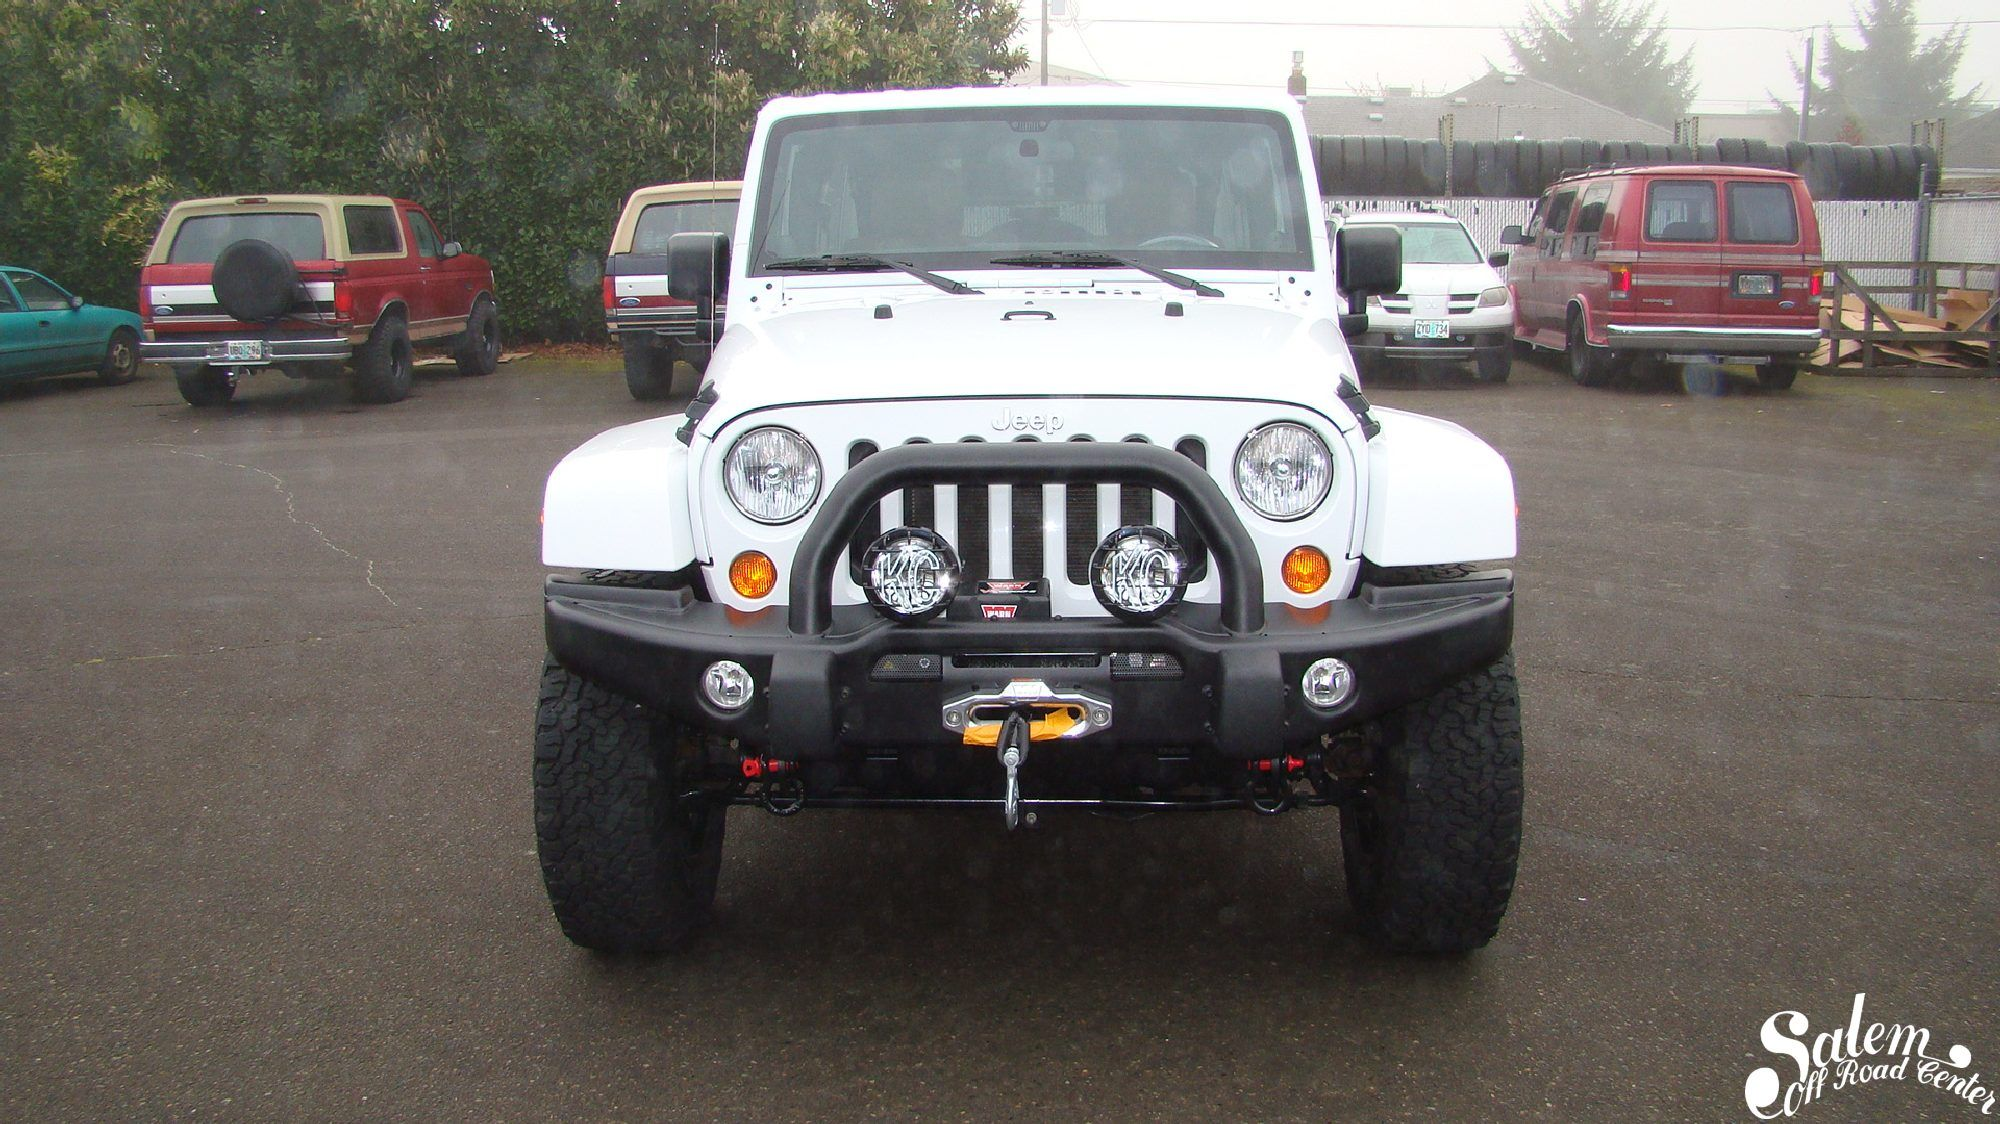 On this 2015 jeep wrangler jk we installed a aev front bumper with a warn vr8000